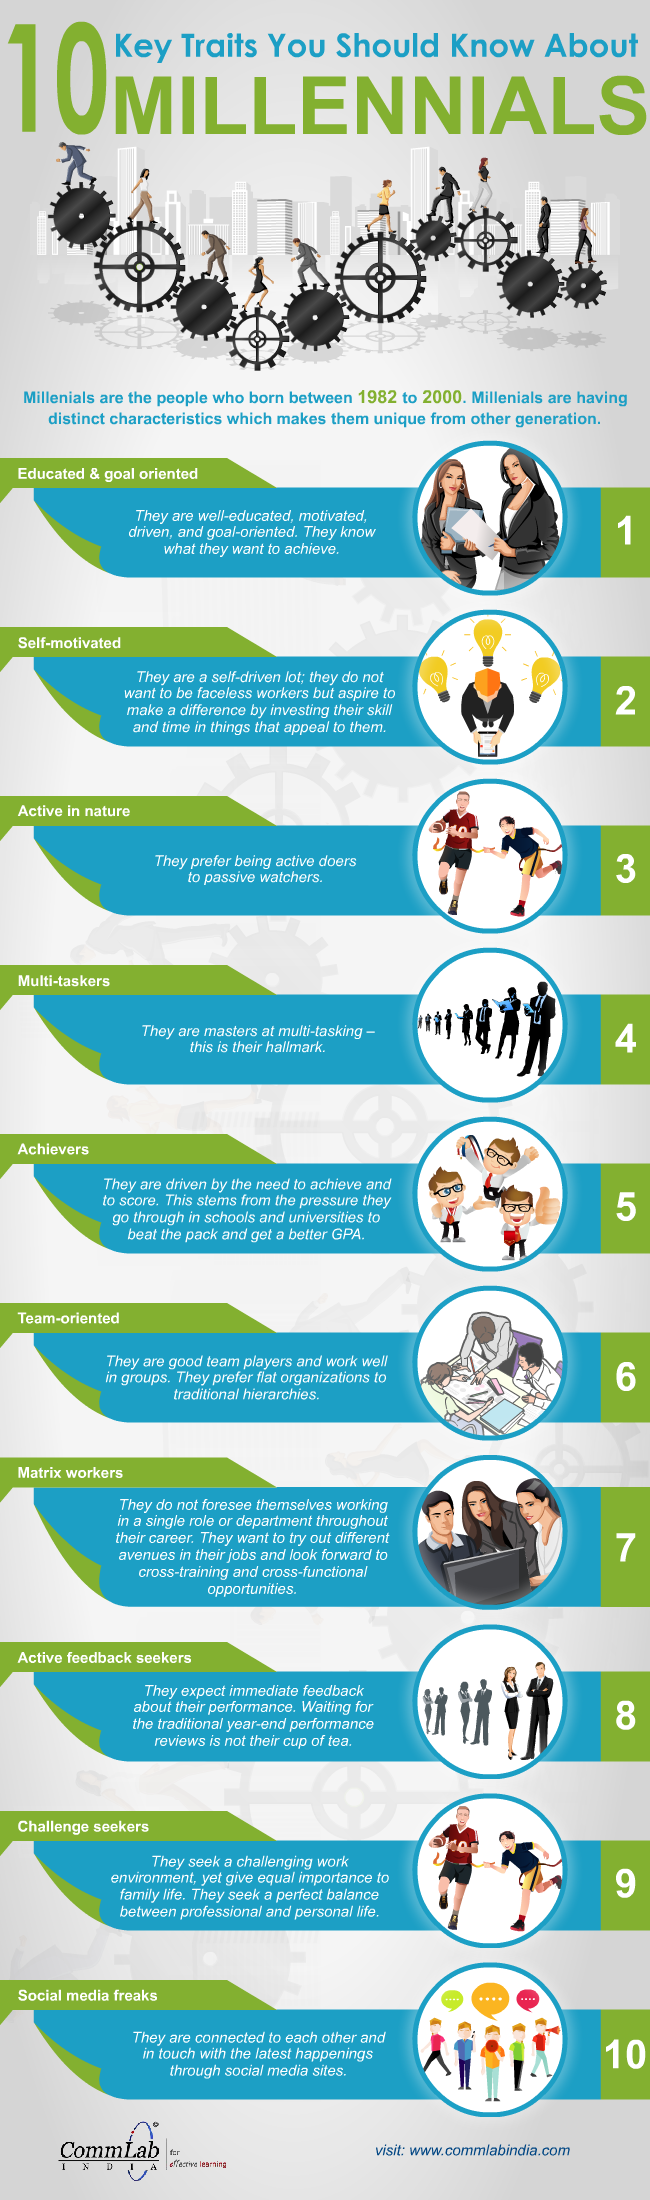 Gen-Y People - Characteristics That Have a Bearing on Their Learning [Infographic]